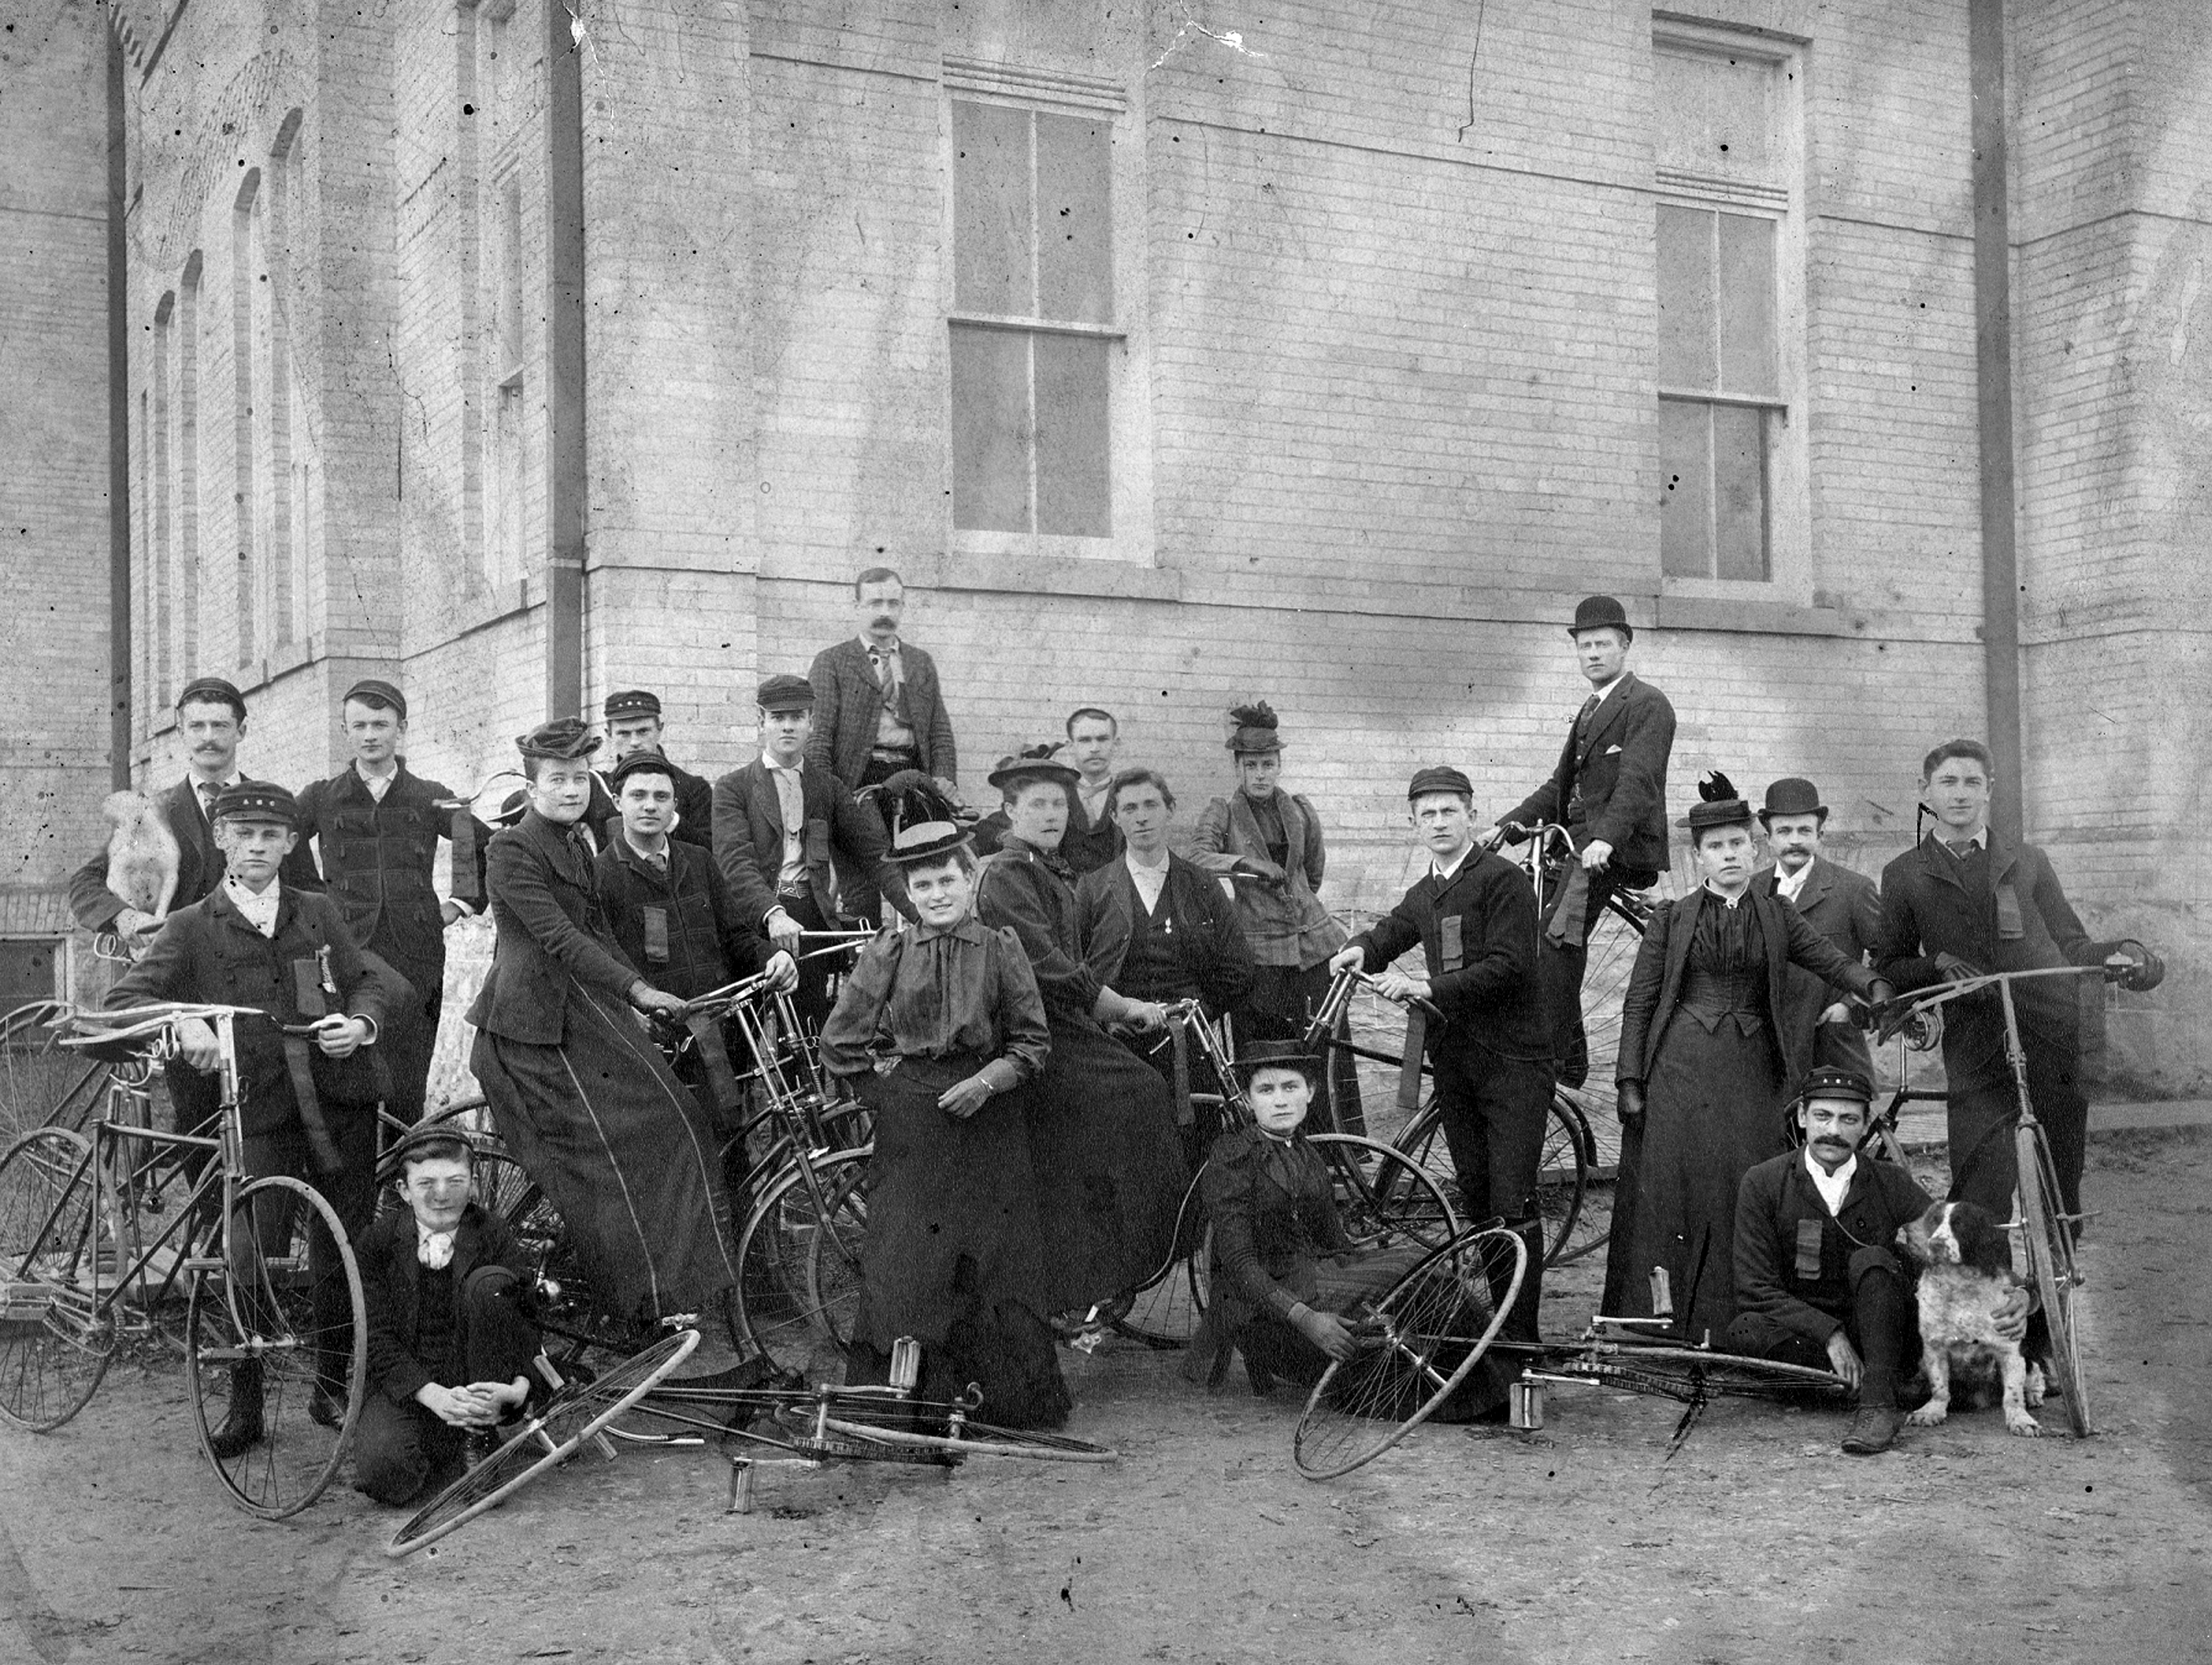 A black and white photograph of a group of cyclists.